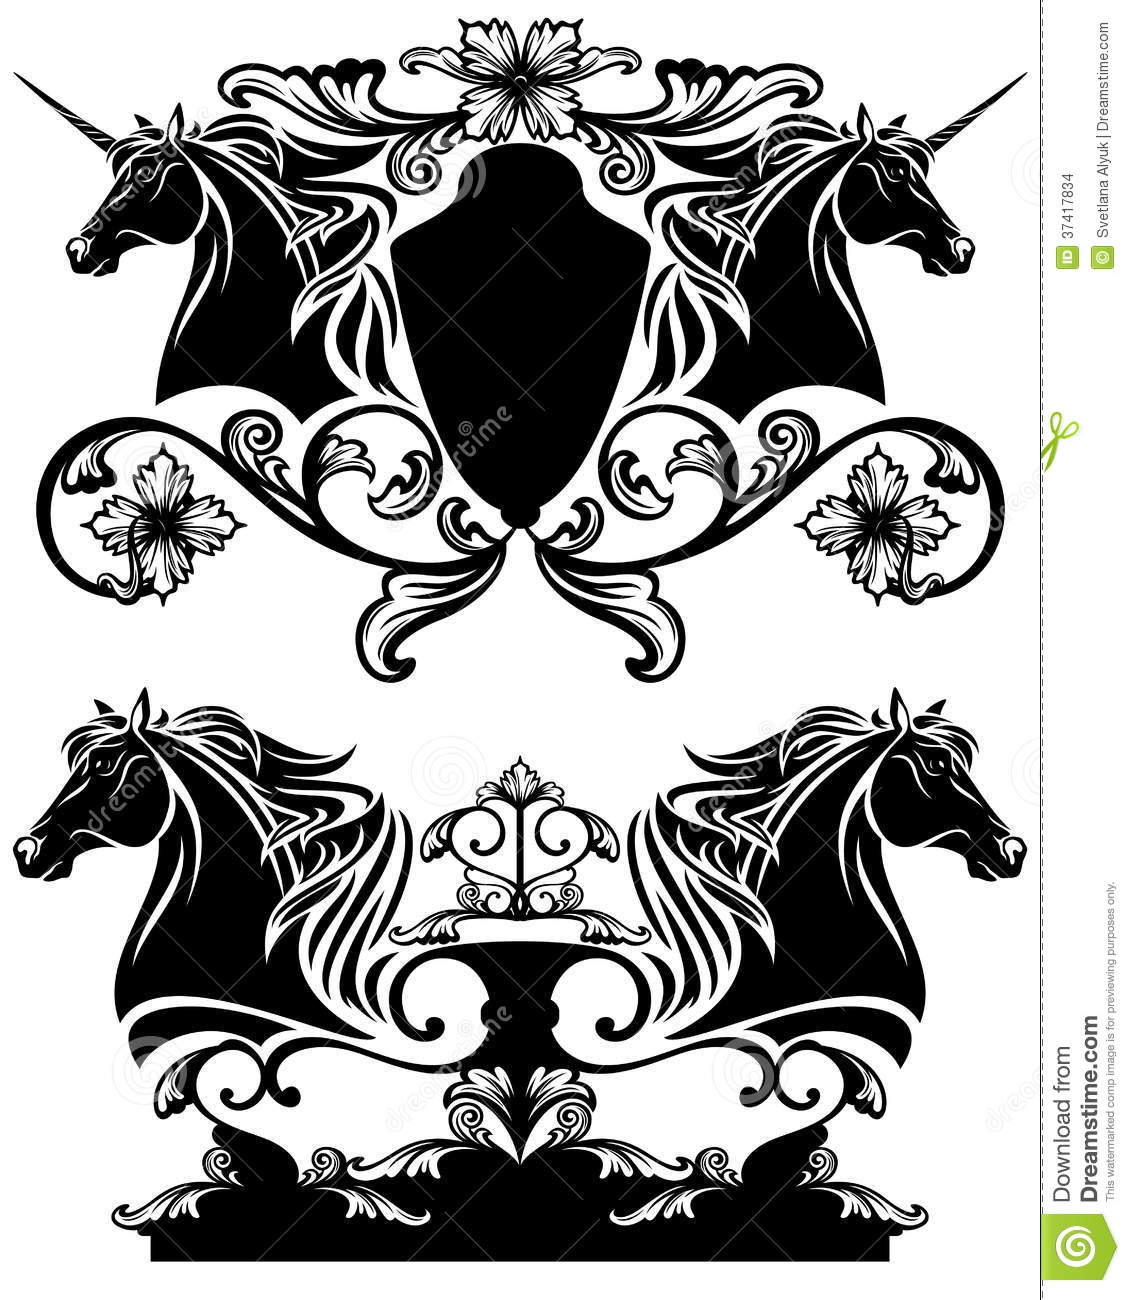 Horse Head Vector Design Stock Images - Image: 37417834